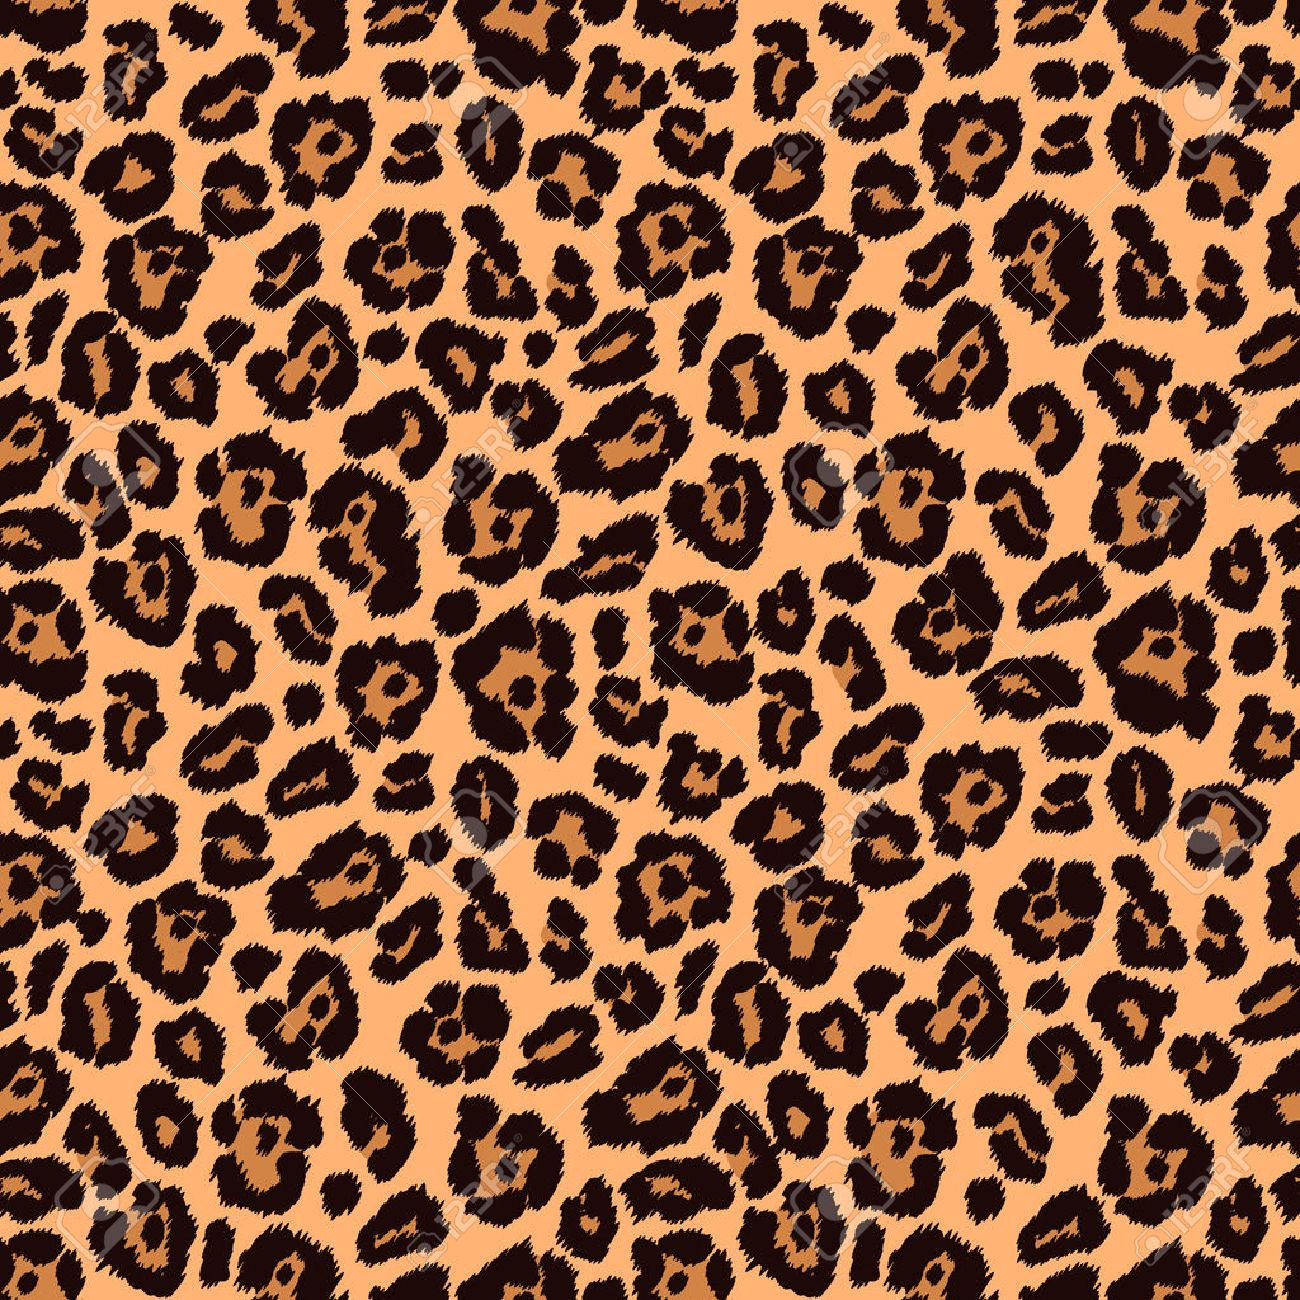 animal print leopard texture endless texture can be used for printing onto fabric and - Animal Pictures To Print Free